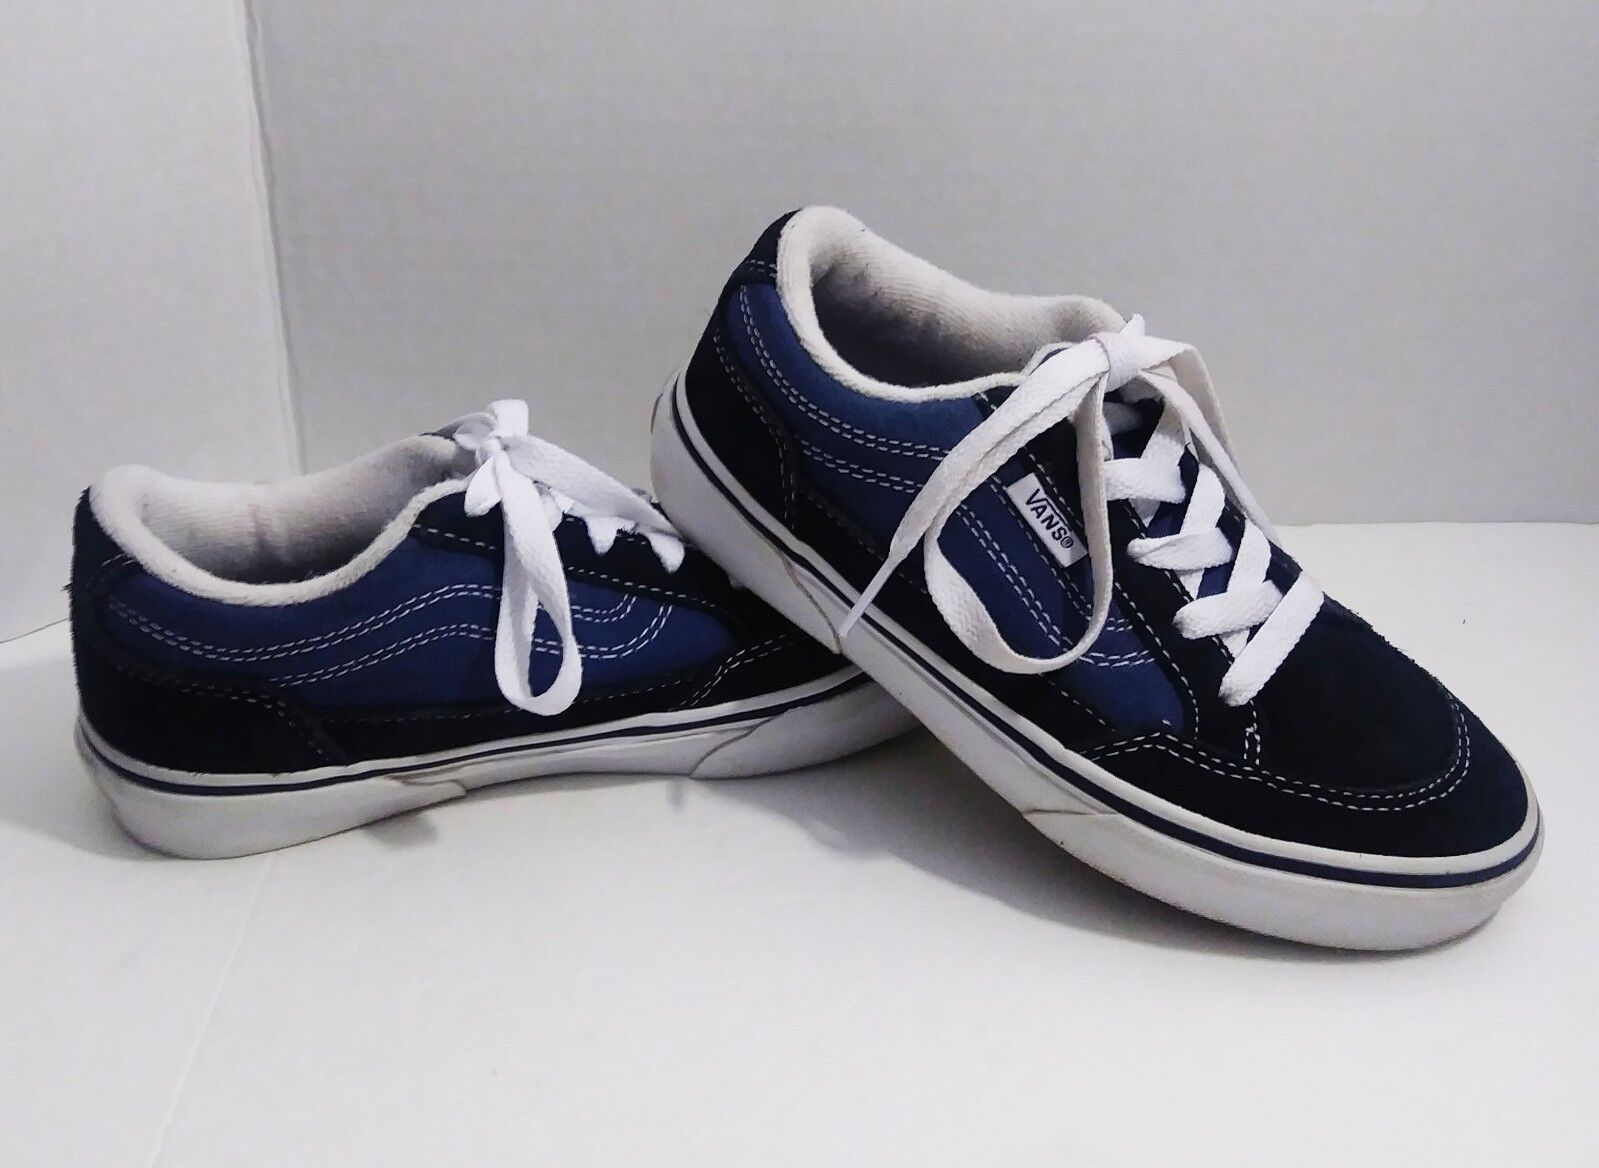 Vans Old Skool Pro Off the Wall (Navy Navy/White) Boys Skate Shoes - Size 1